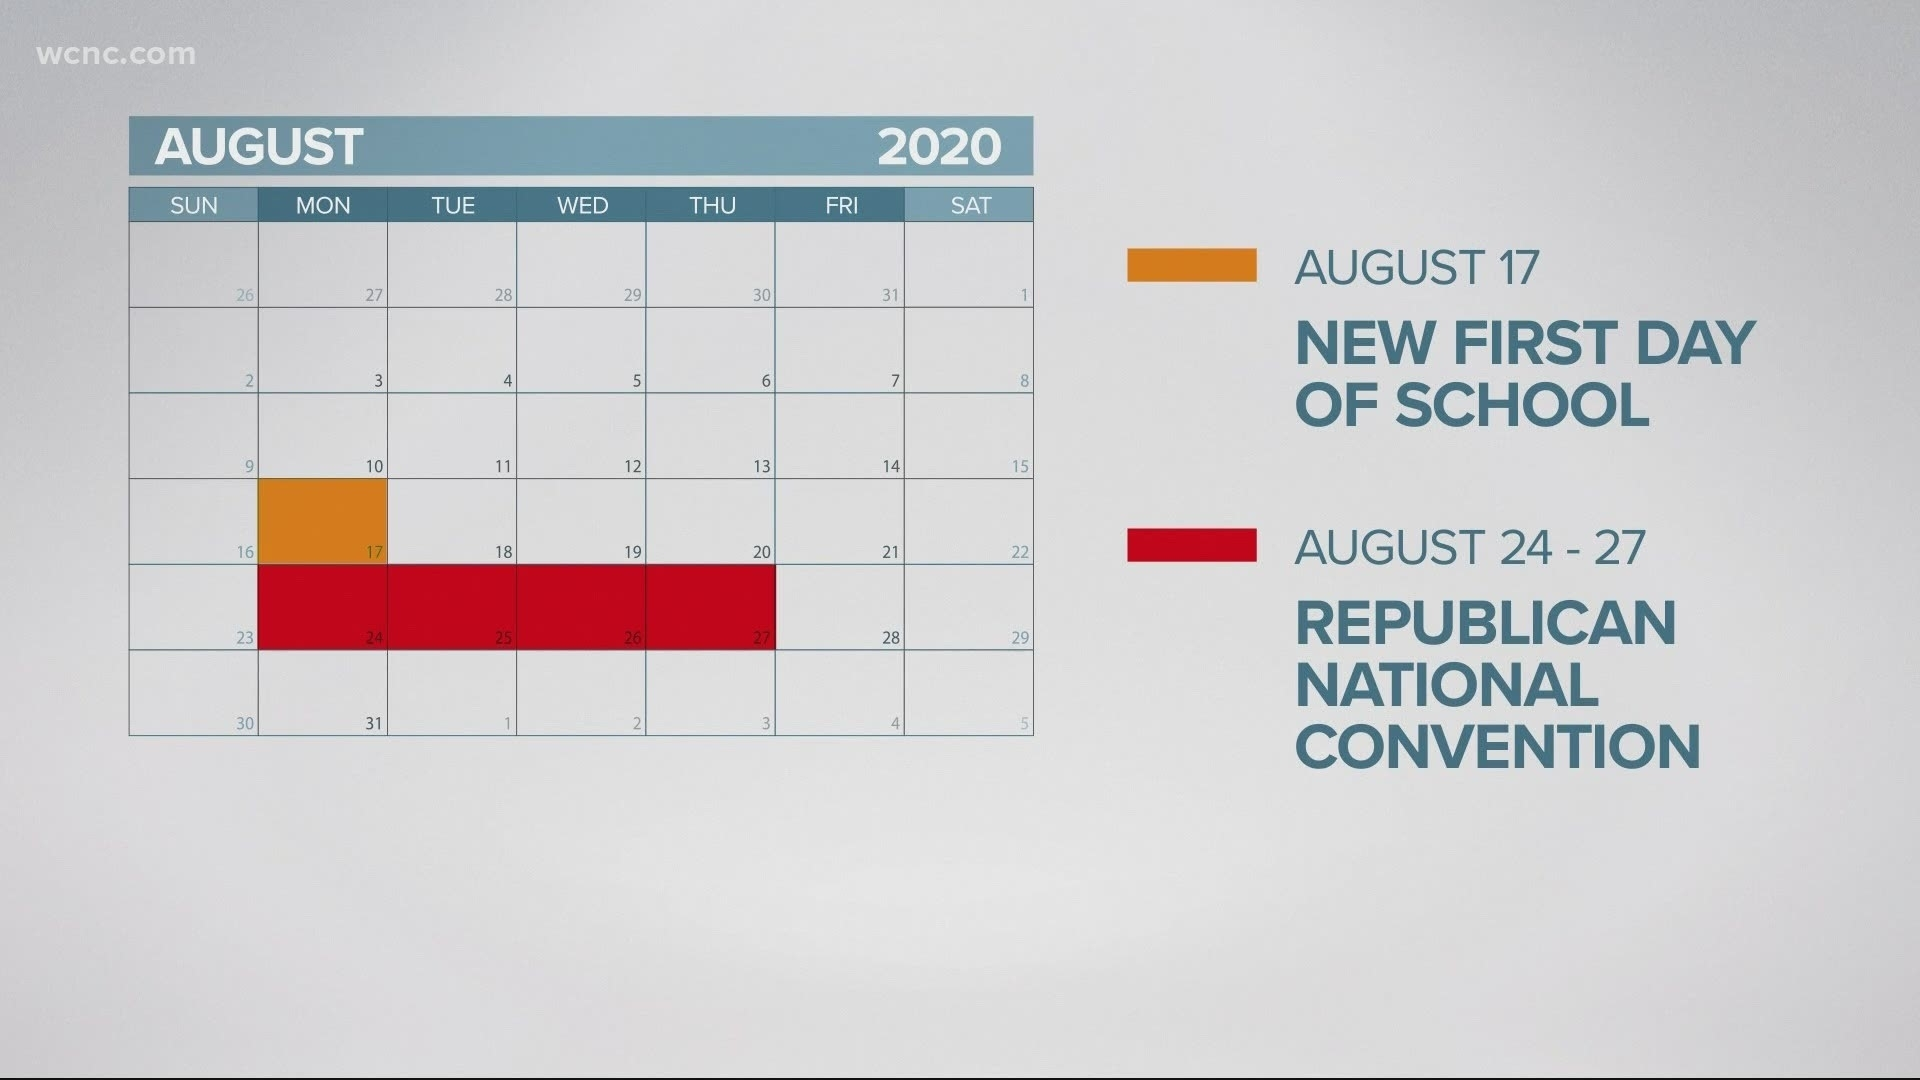 Cms Start Date Moves To August 17, Before The Rnc